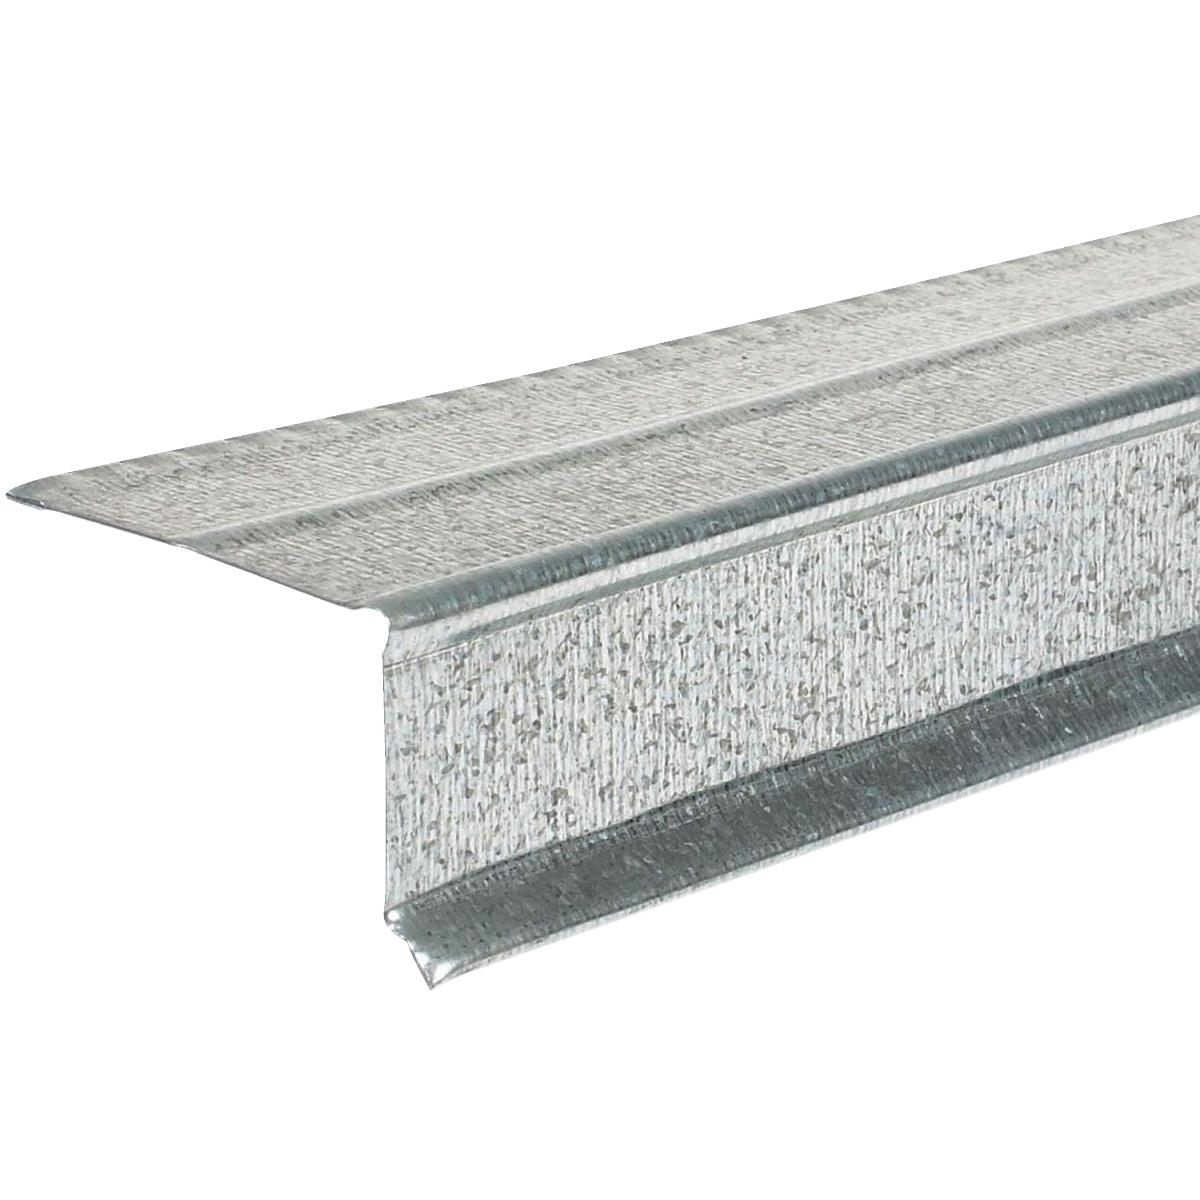 Amerimax Galvanized Style C Roof & Drip Edge Flashing 5610400120